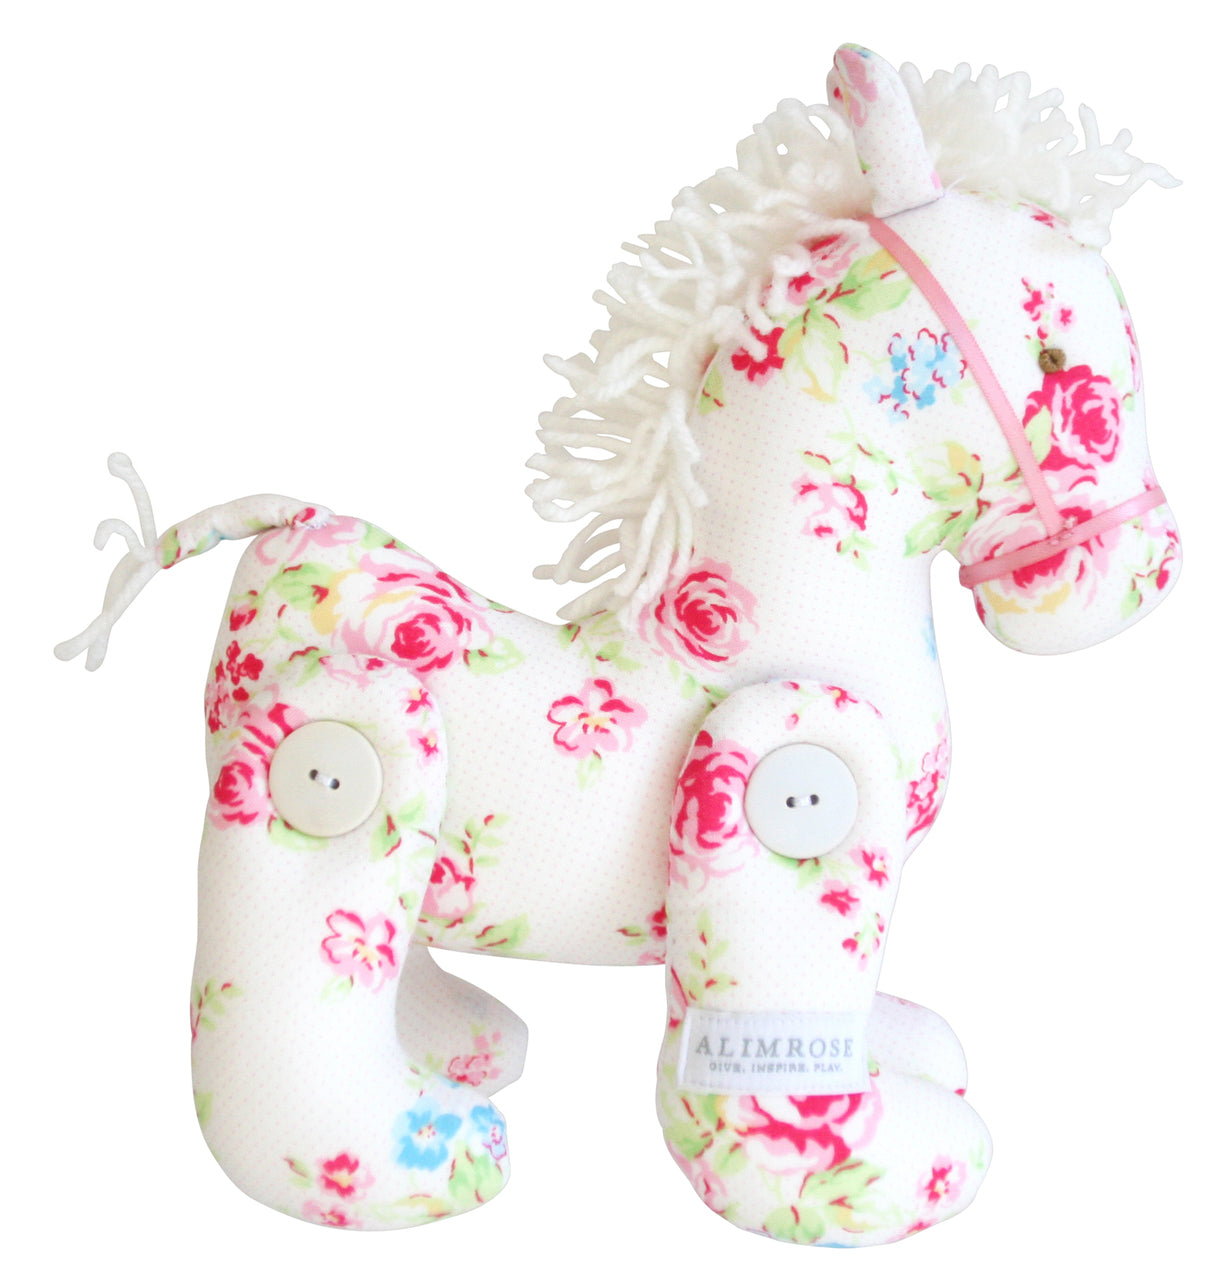 Alimrose Jointed Pony White Floral 22cm